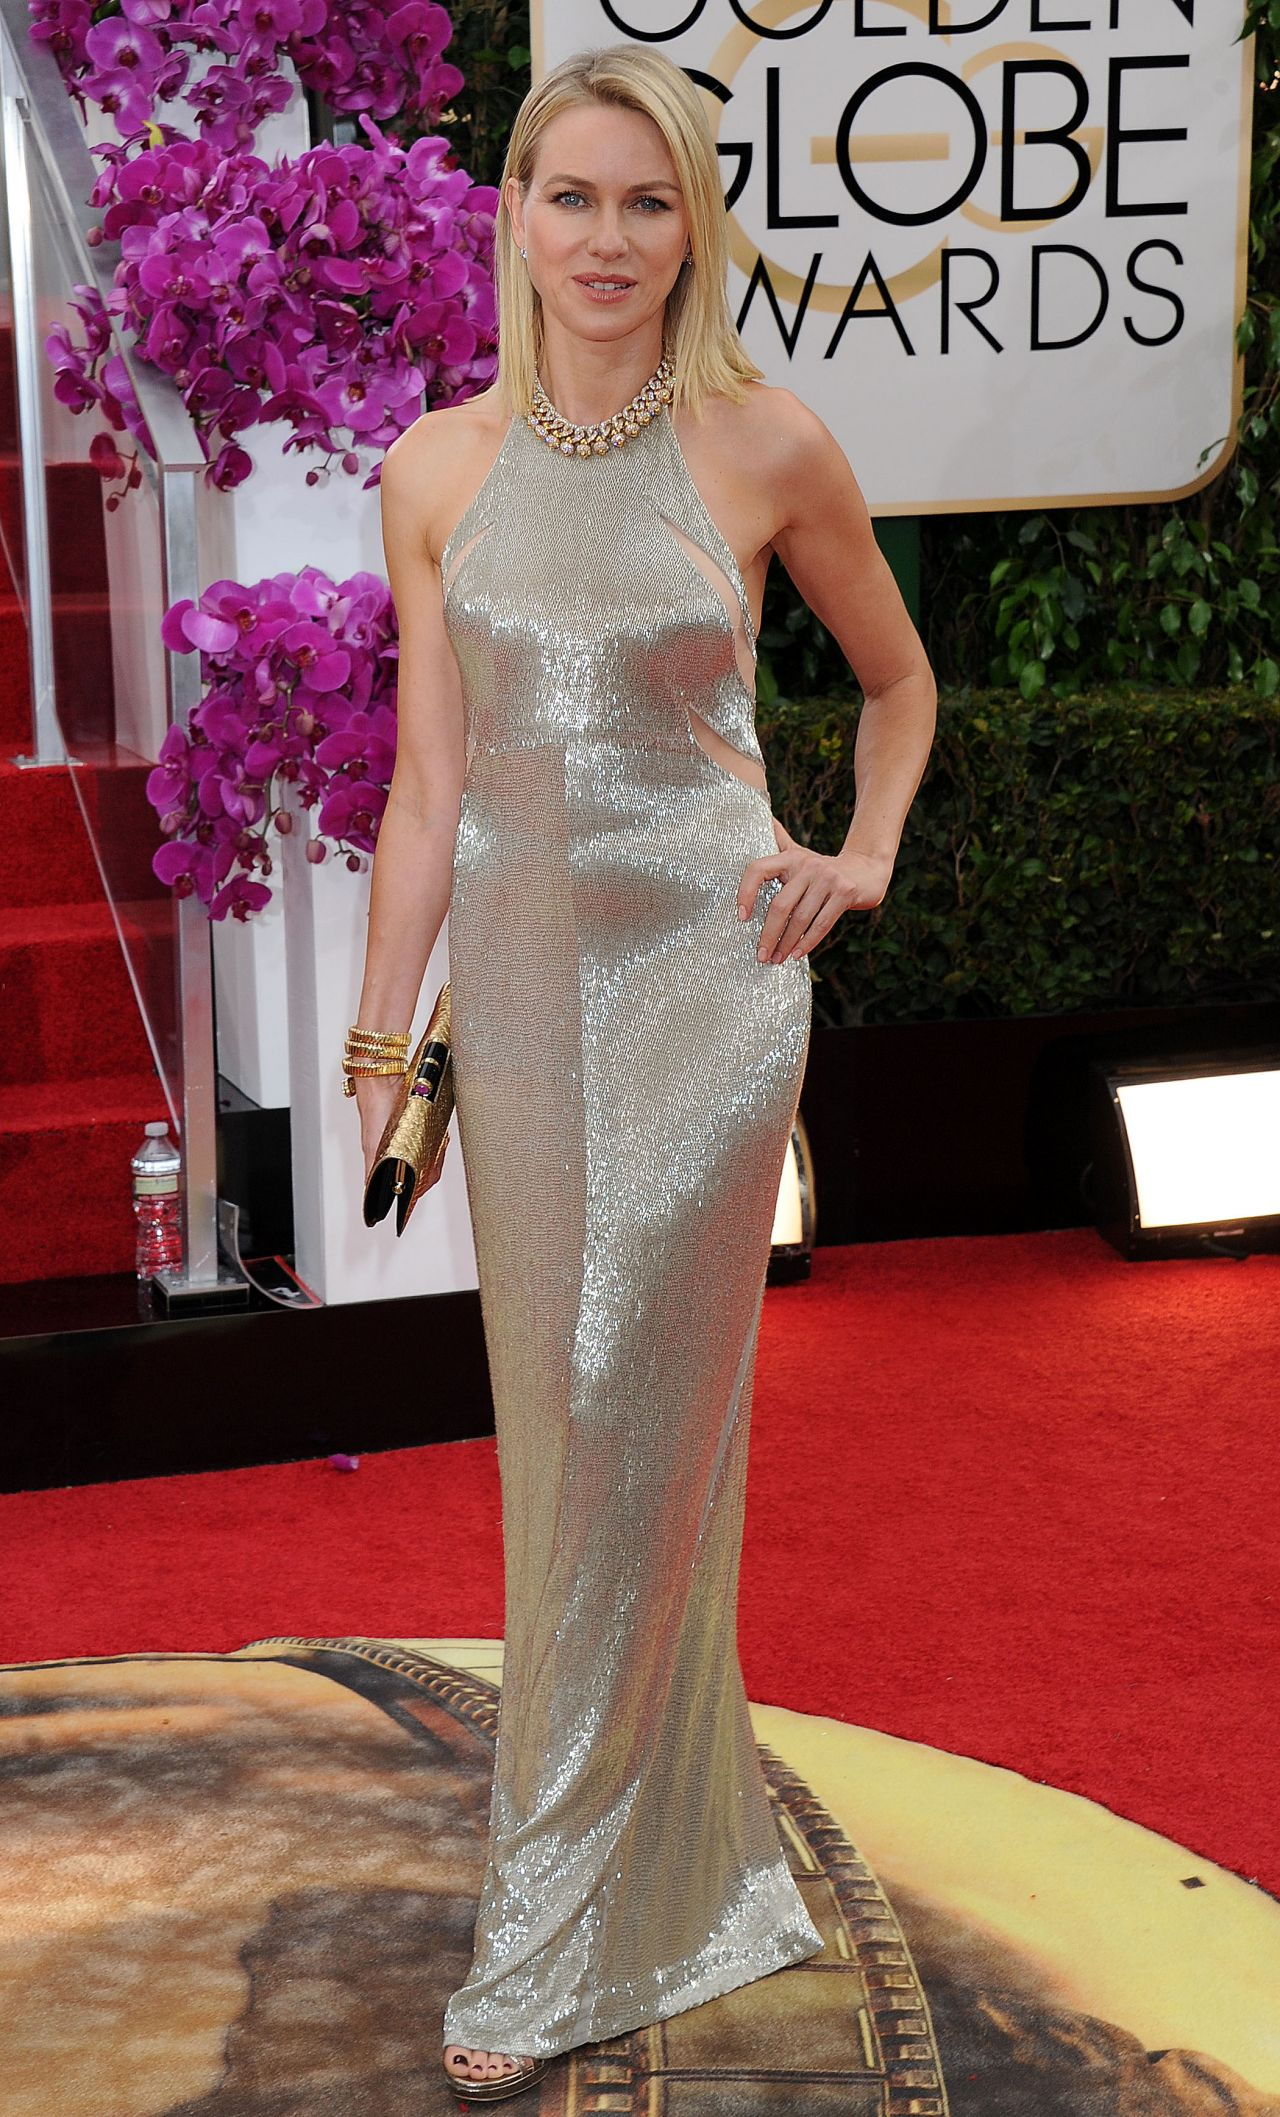 Naomi Watts Wears Tom Ford at 2014 Golden Globe Awards (Part II)